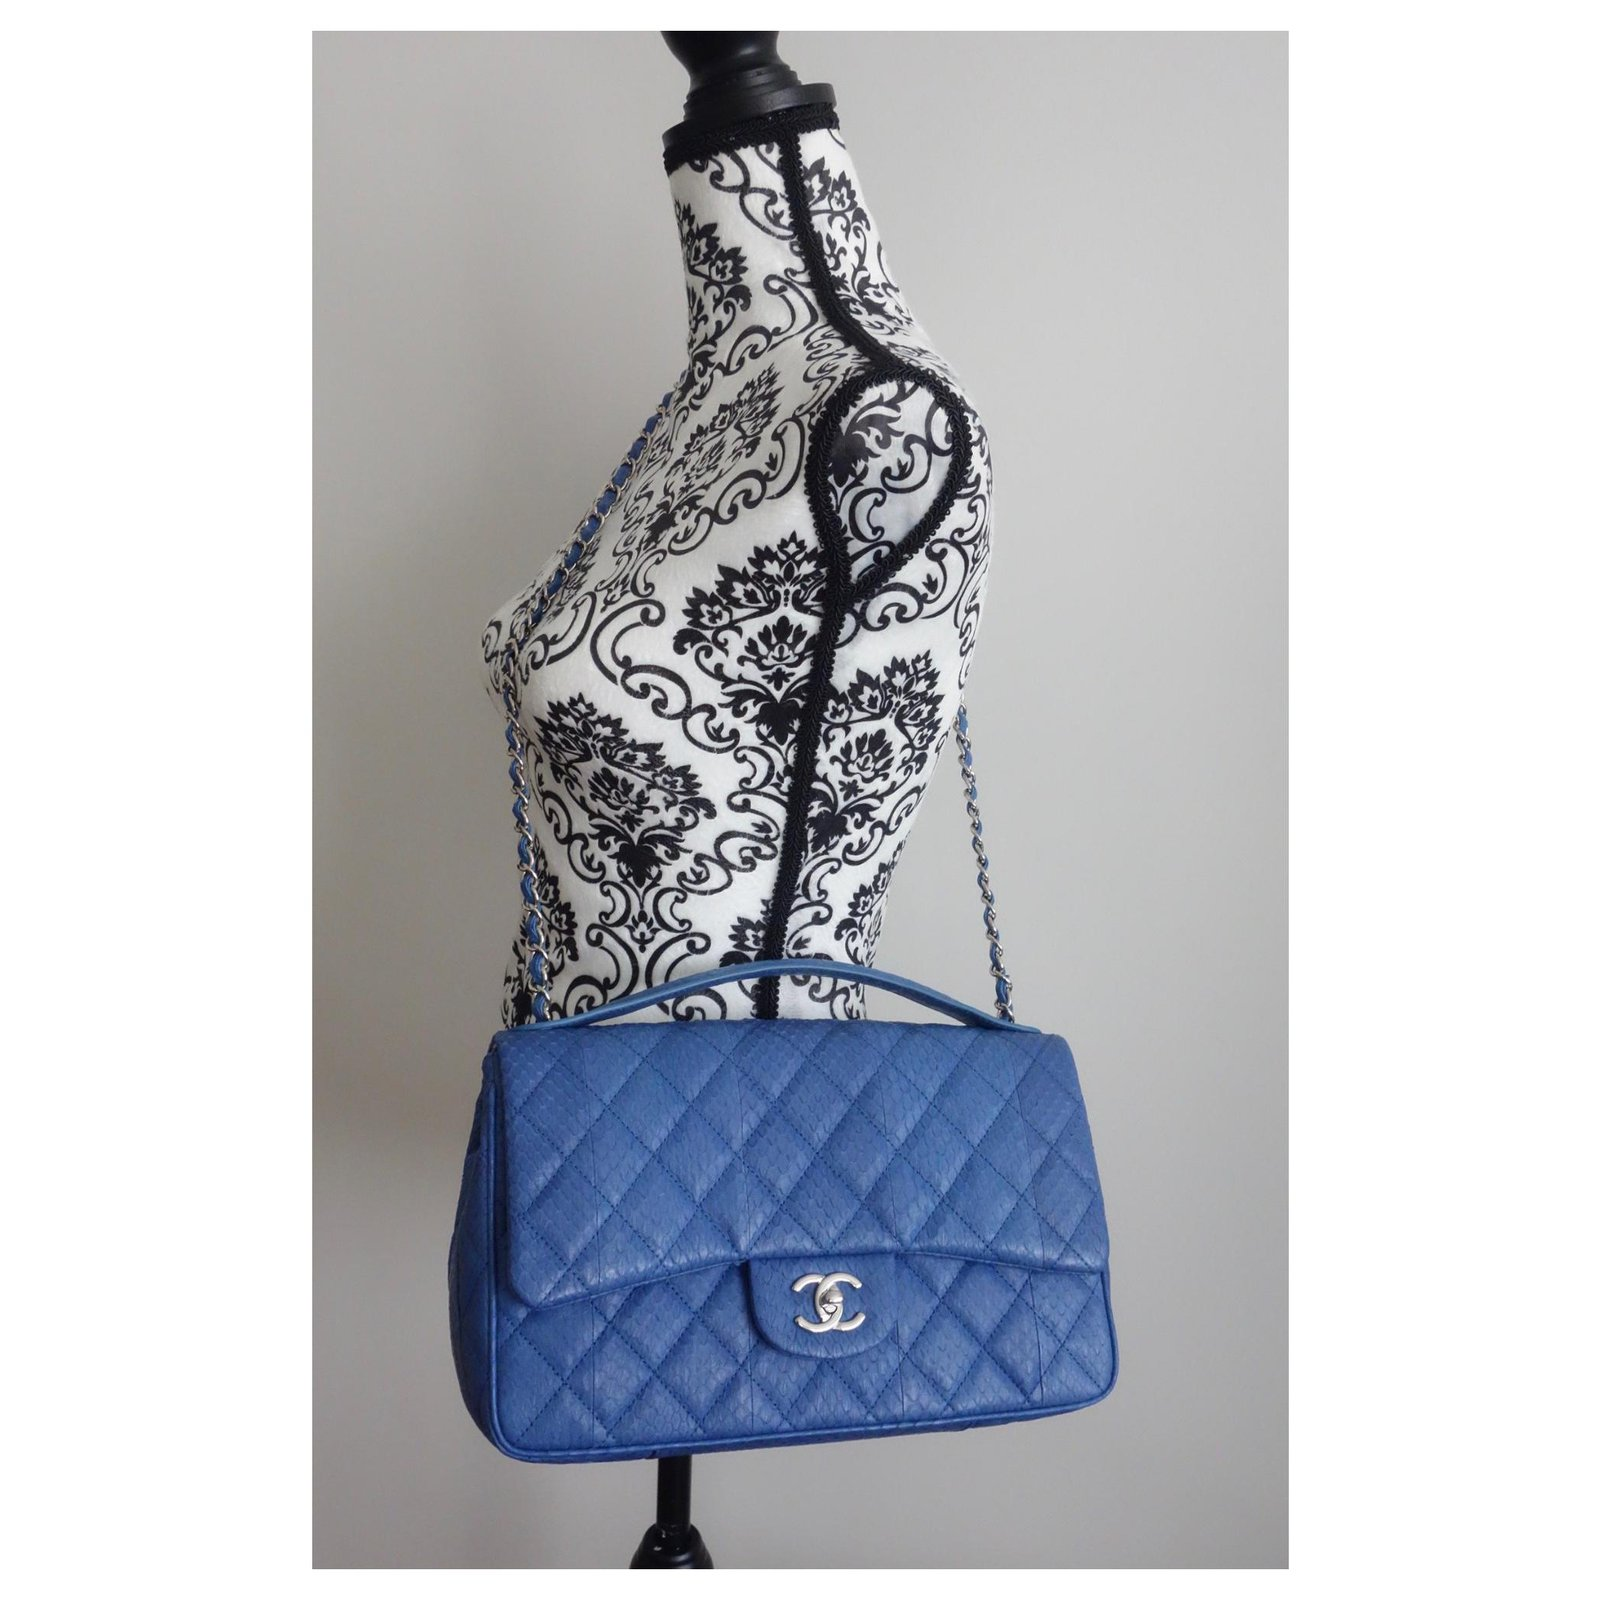 8f09f6414cd383 Facebook · Pin This. Chanel BAG CHANEL LEATHER EXOTIC GM Handbags Exotic  leather Blue ...